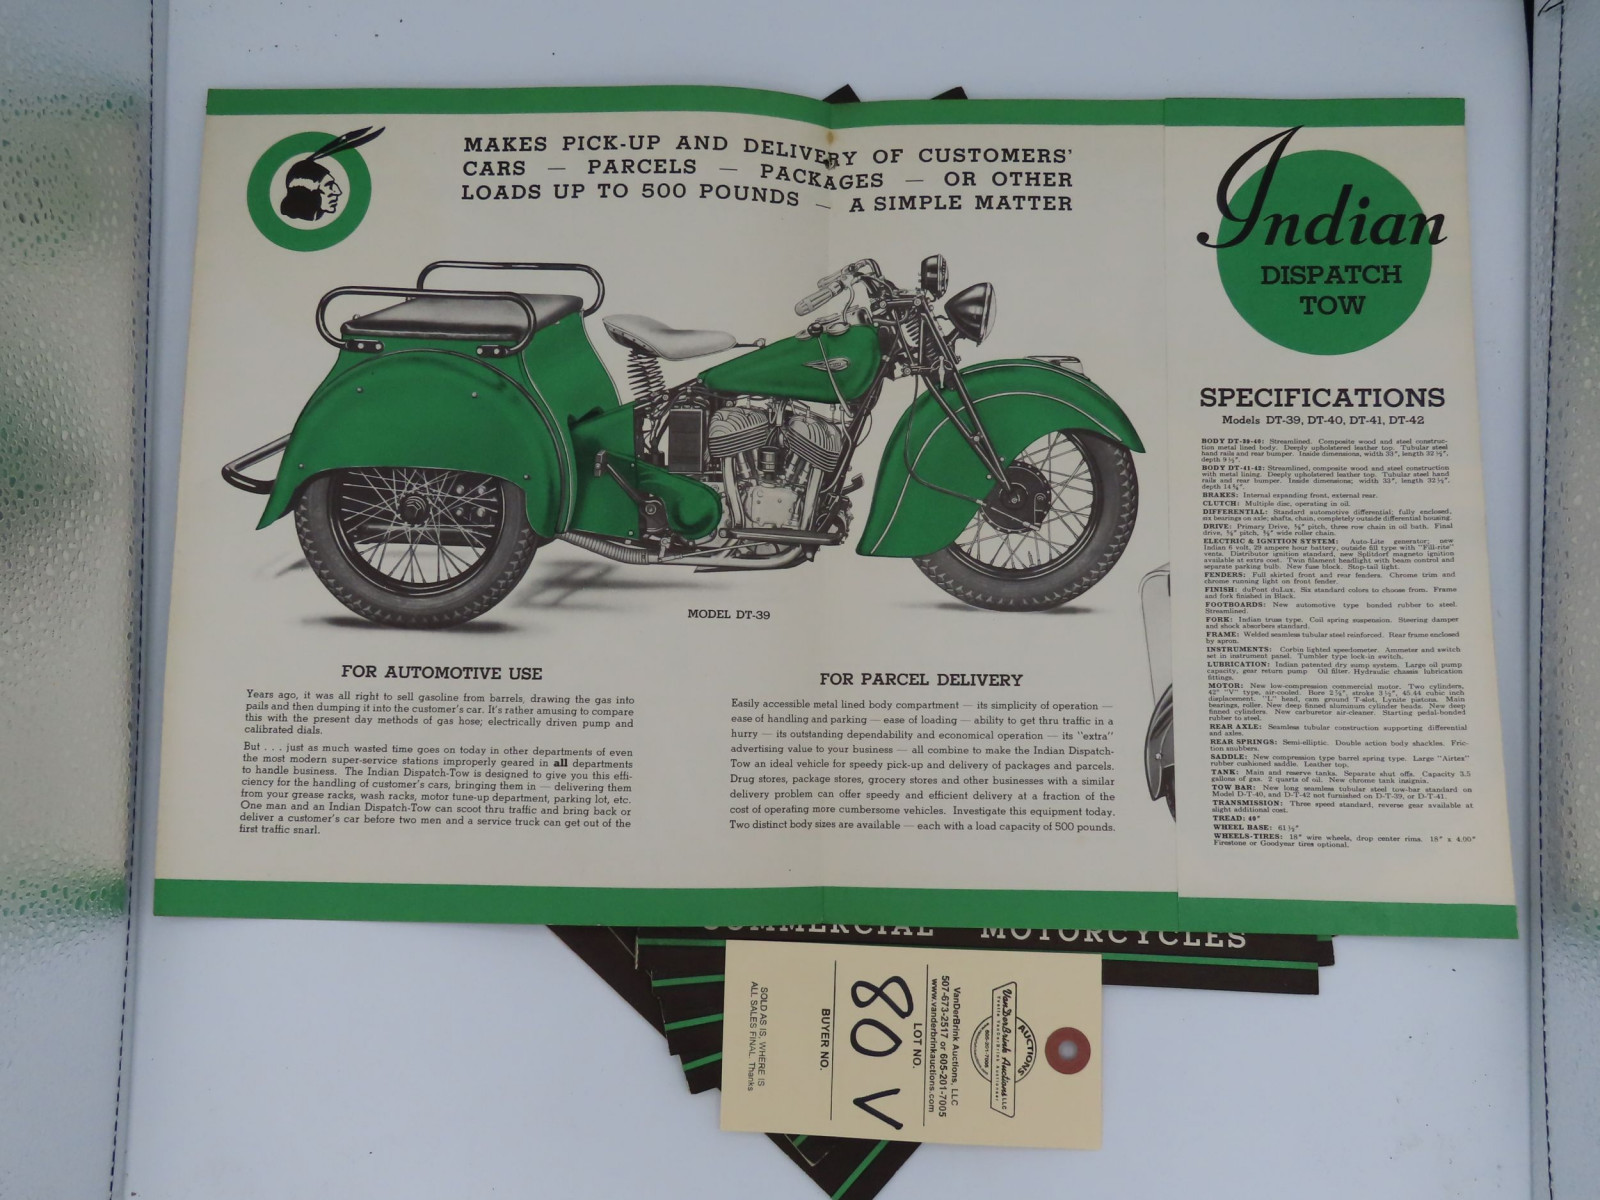 Indian Commercial Motorcycles advertising - Image 2